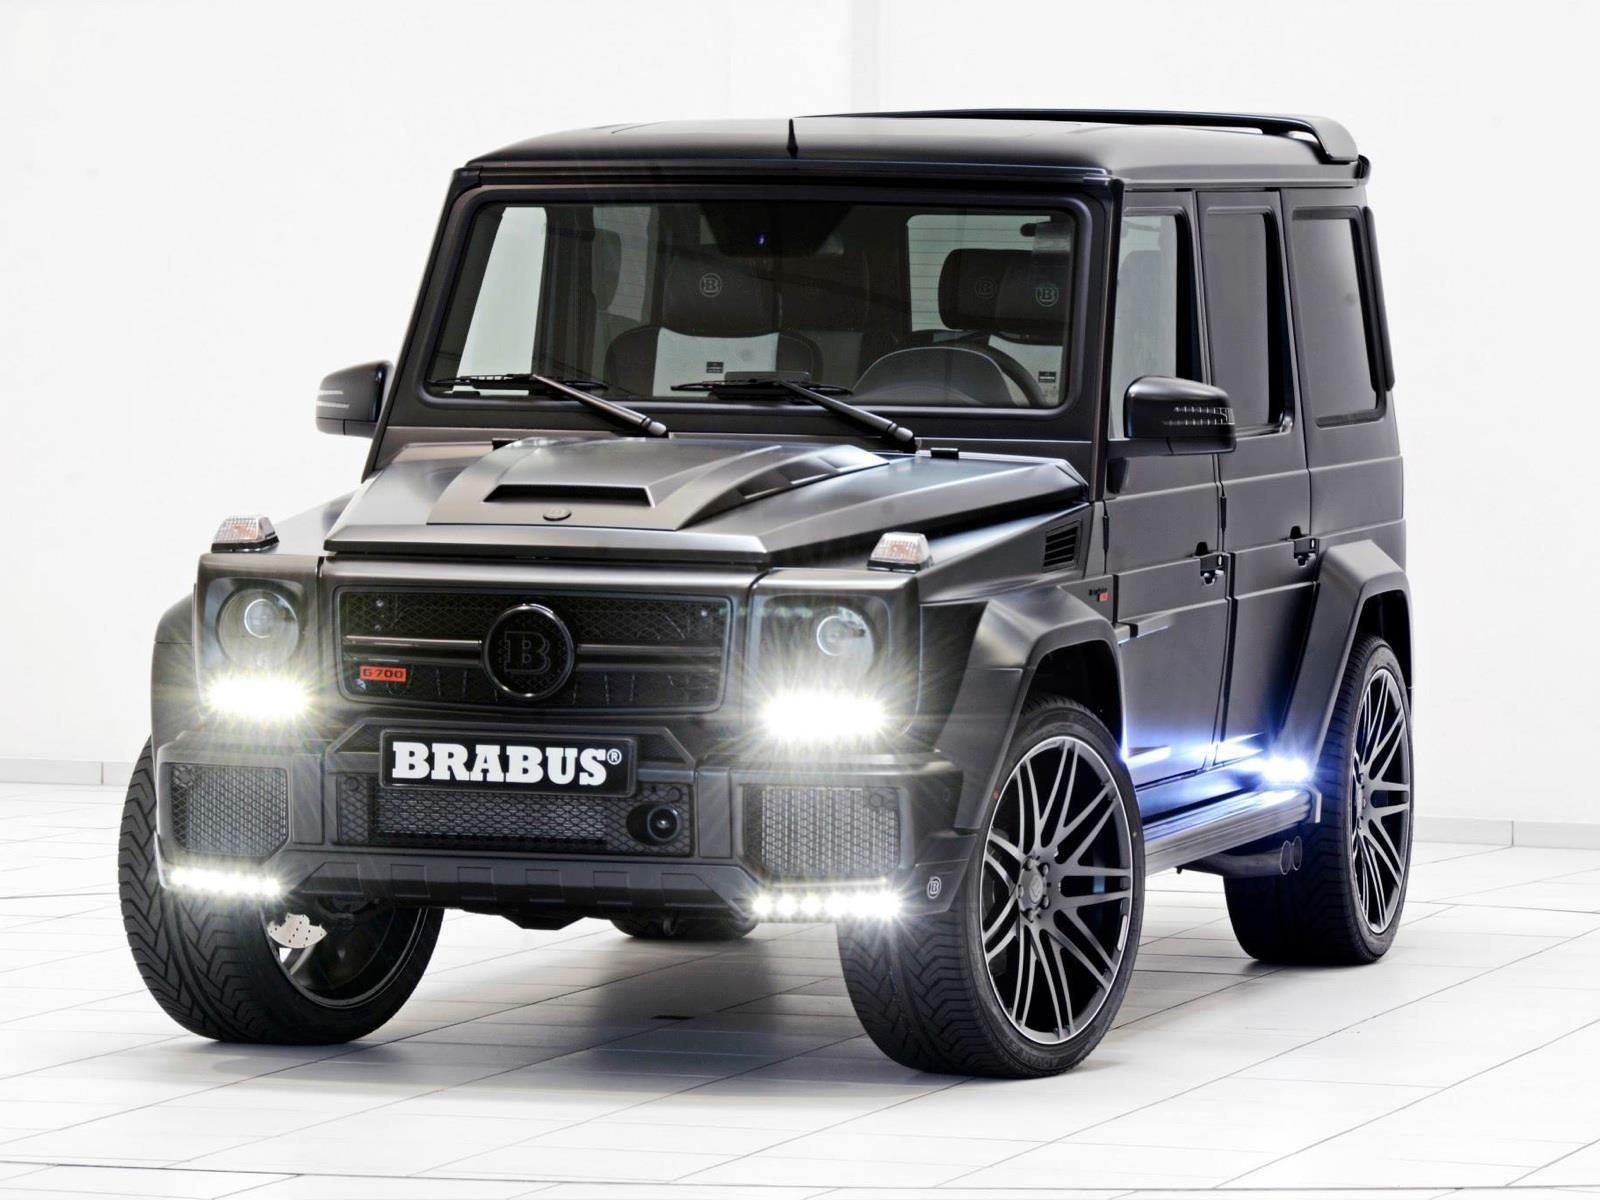 Mercedes benz clase g 63 amg por brabus for Mercedes benz com mx mexico